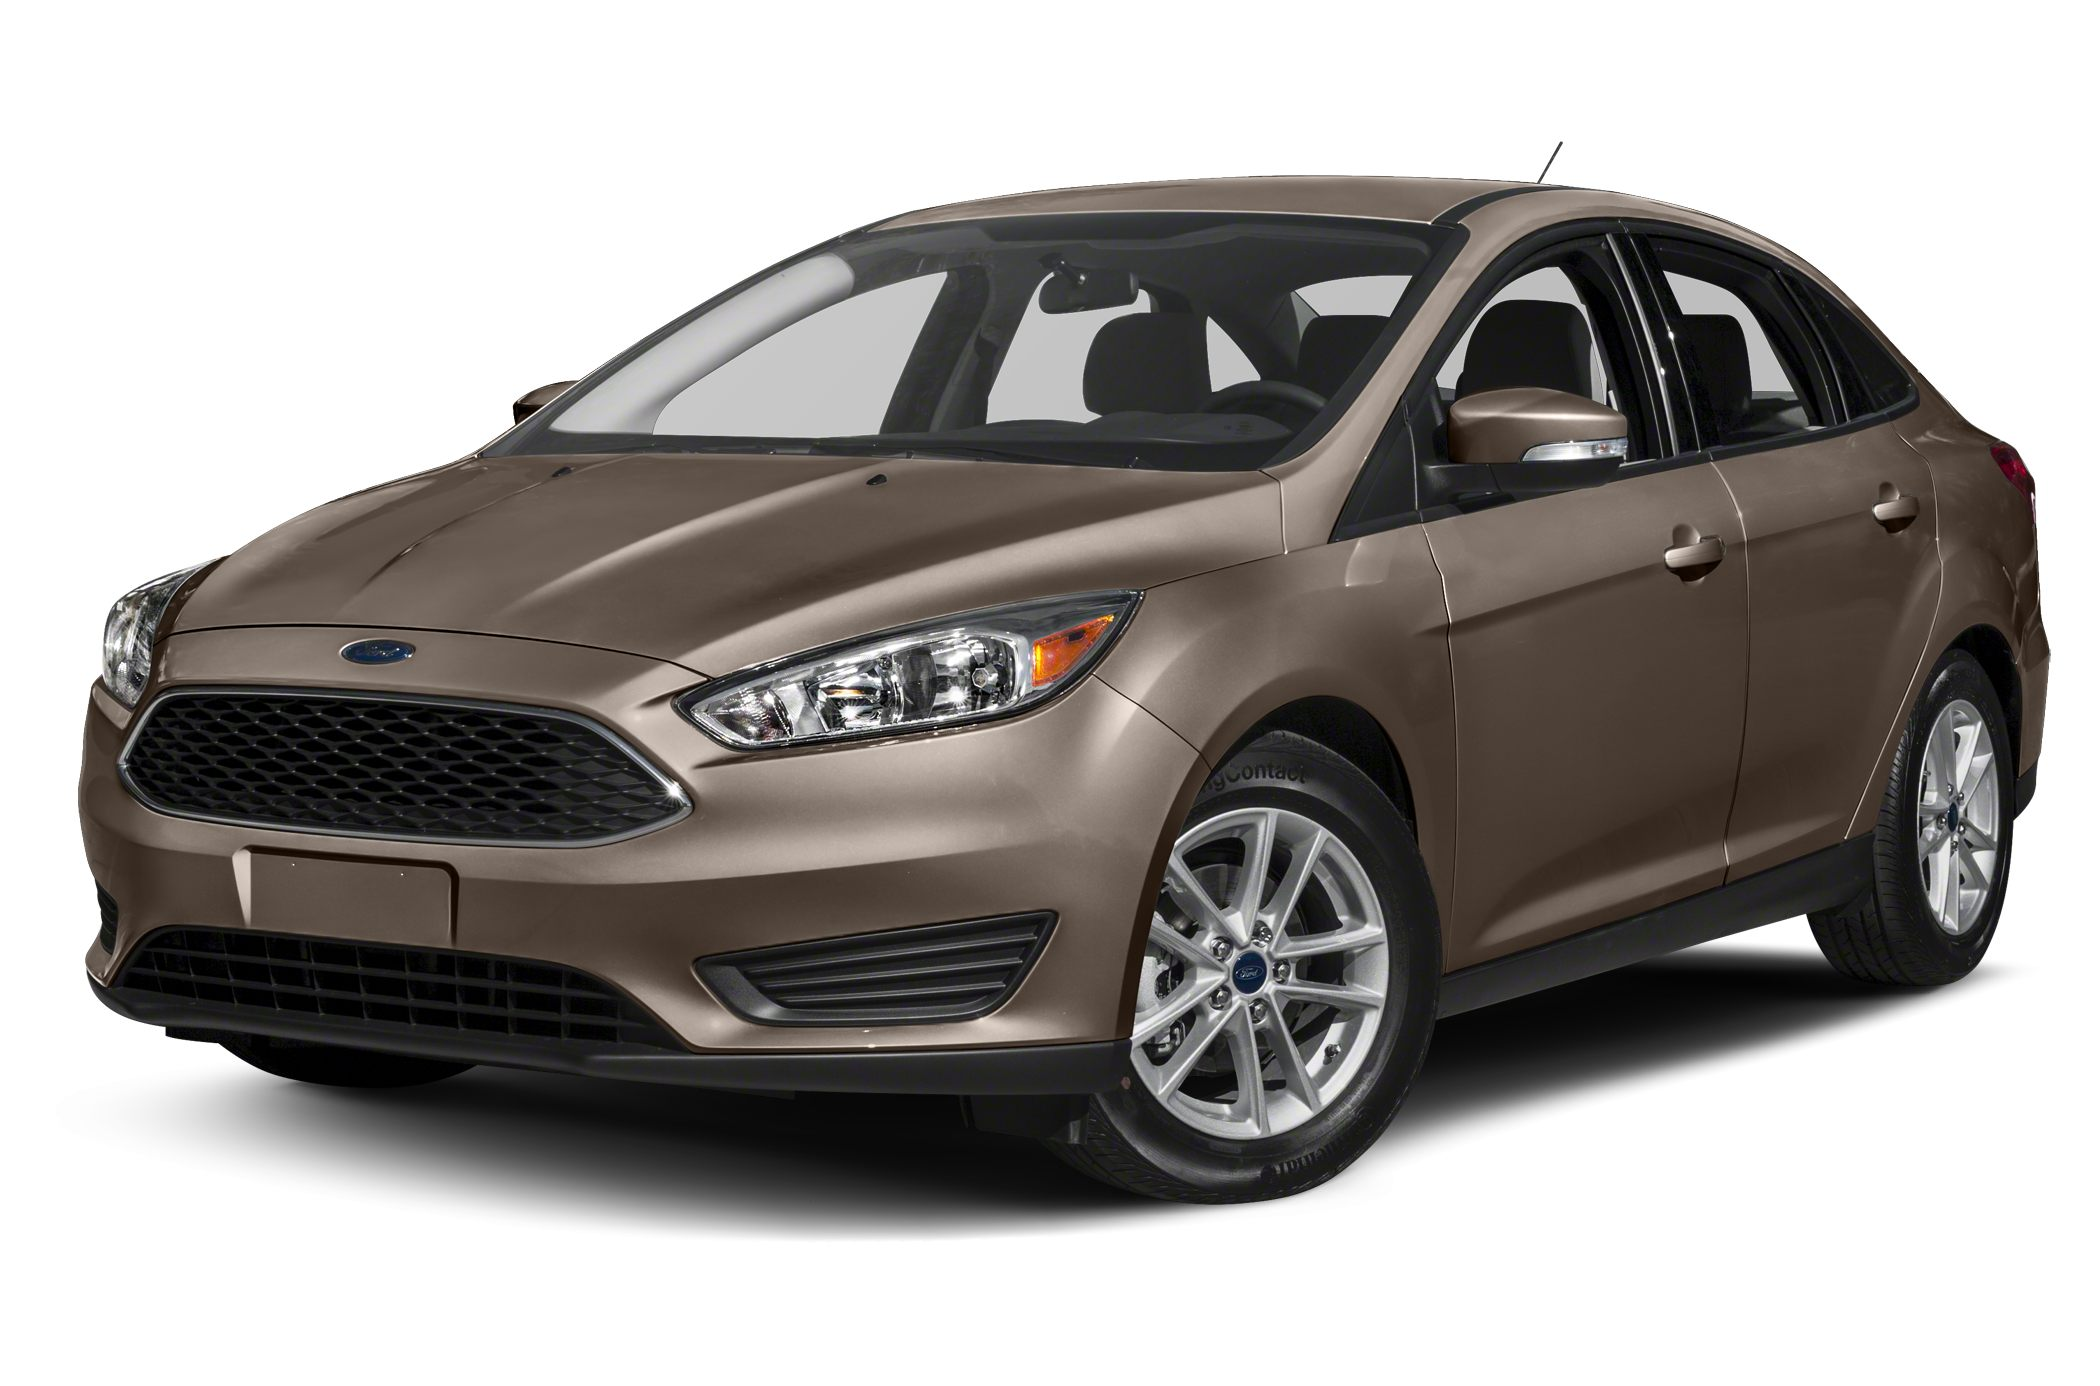 2014 2016 Ford Focus And Fiesta Transmissions Get Extended Warranty